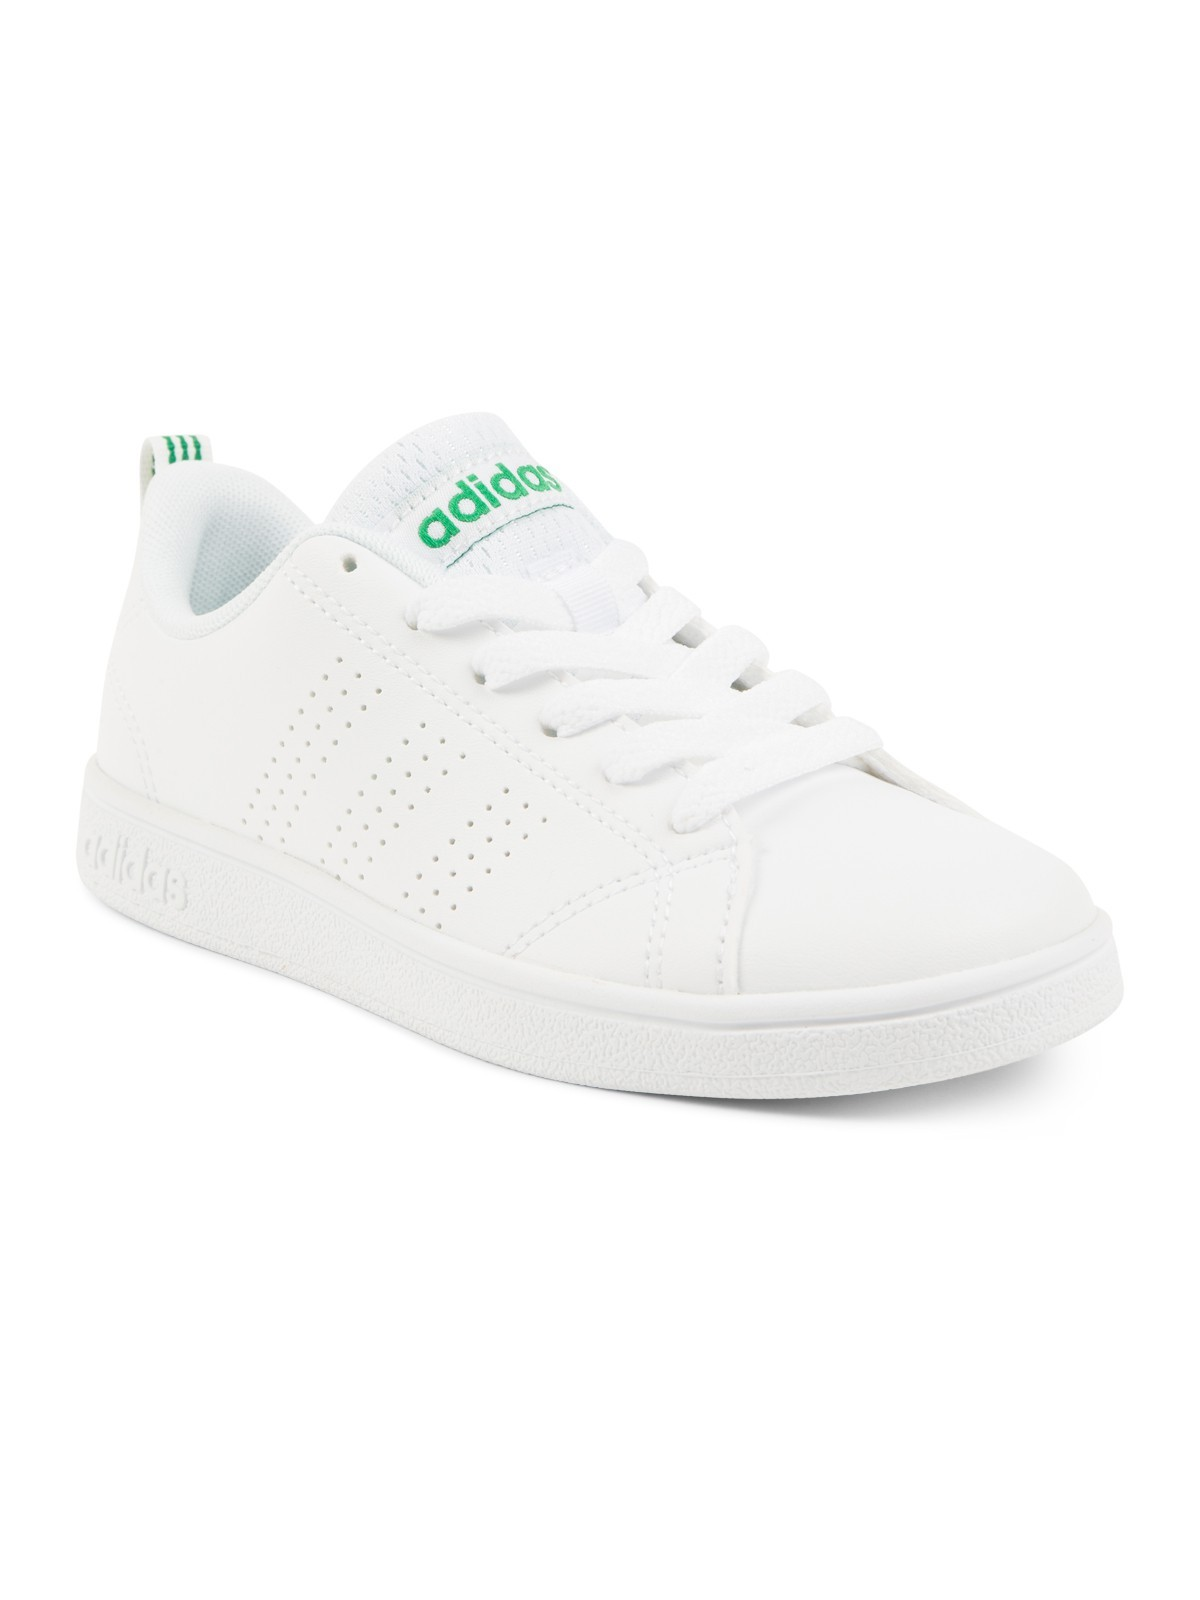 Tennis Adidas Neo blanche fille (30-35)